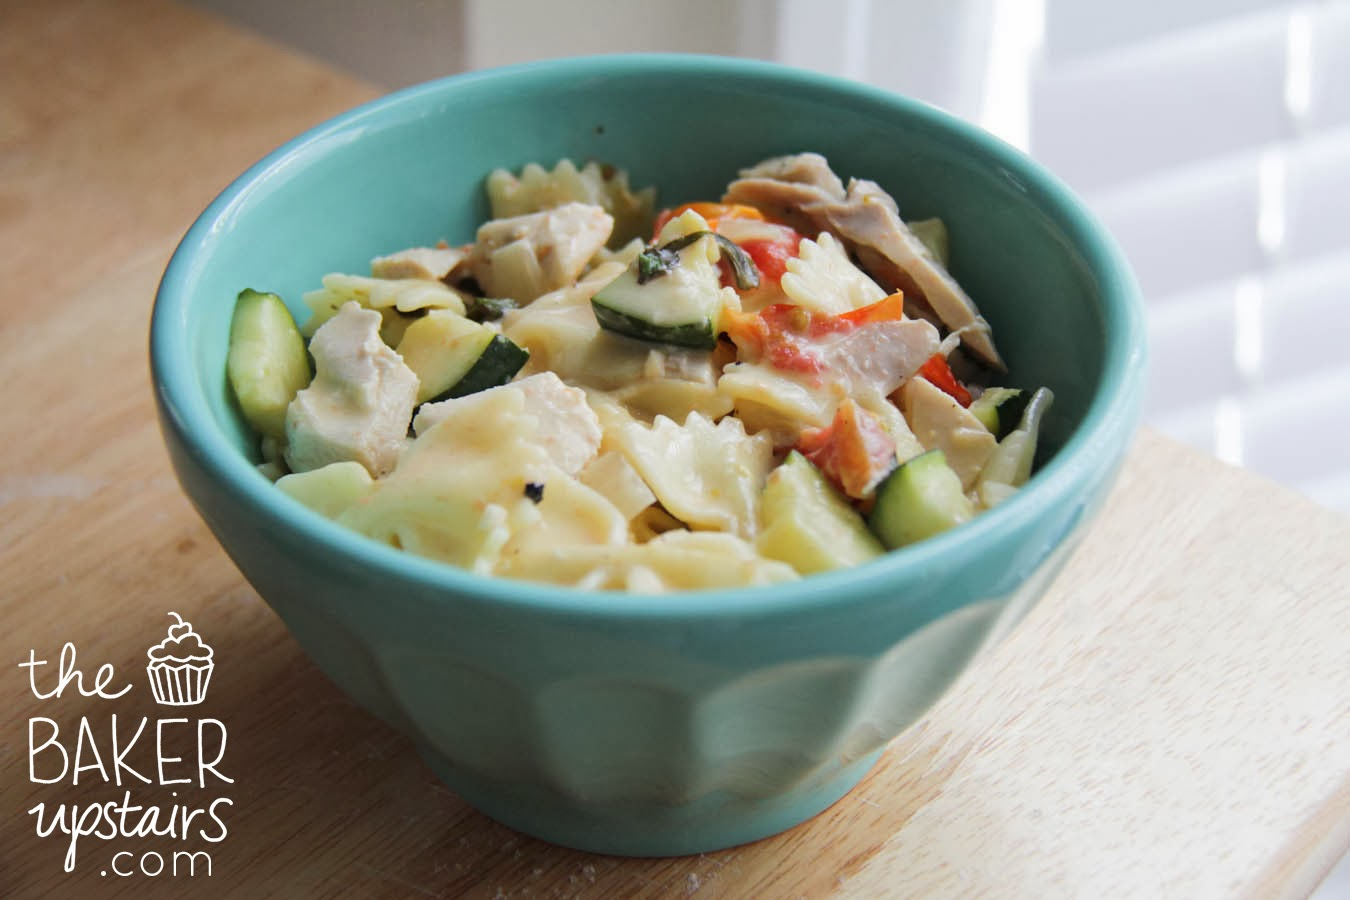 The Baker Upstairs: farfalle with zucchini